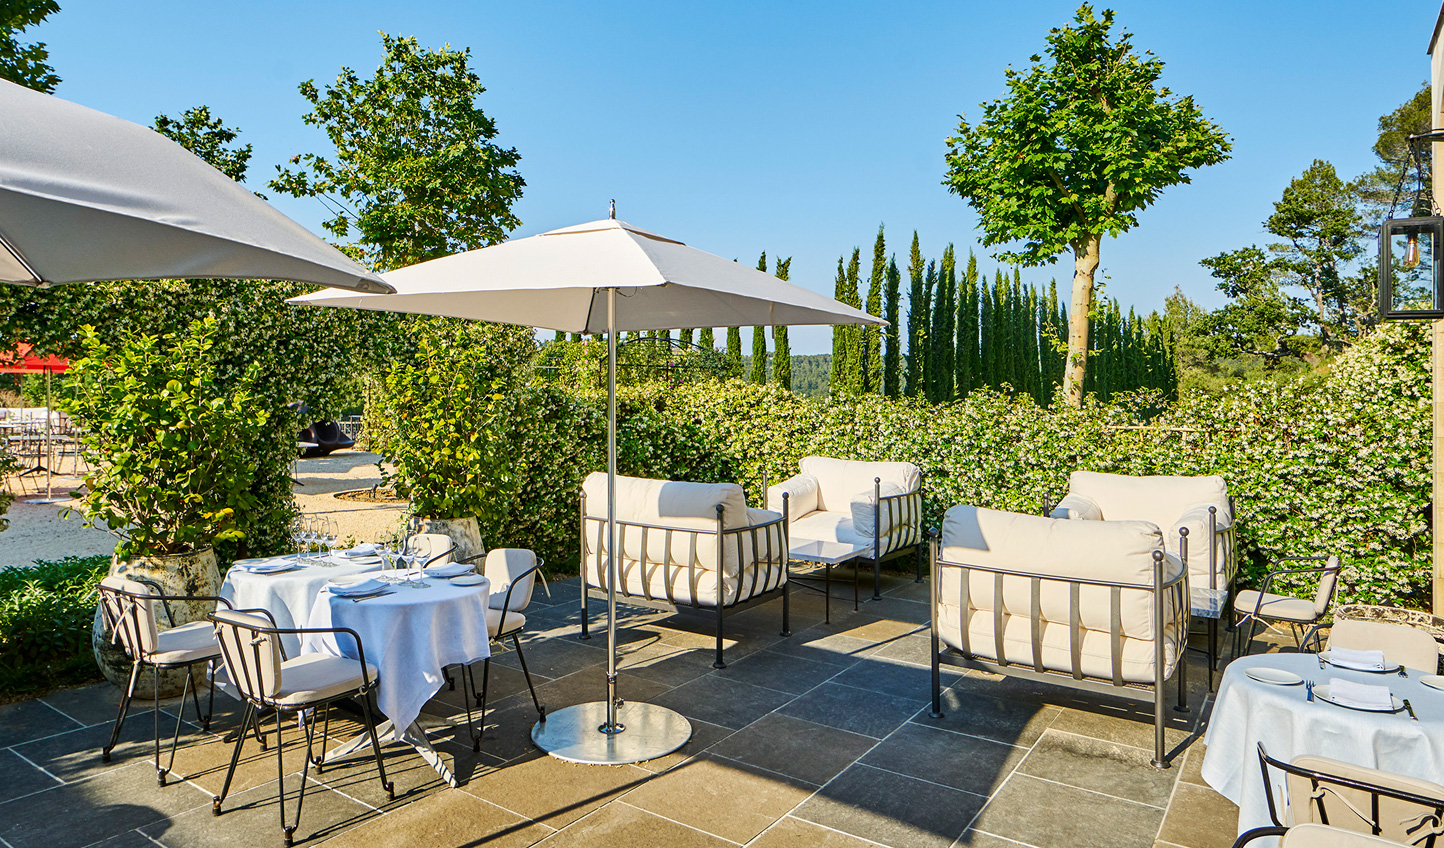 Soak in the Provencal sunshine out in the garden